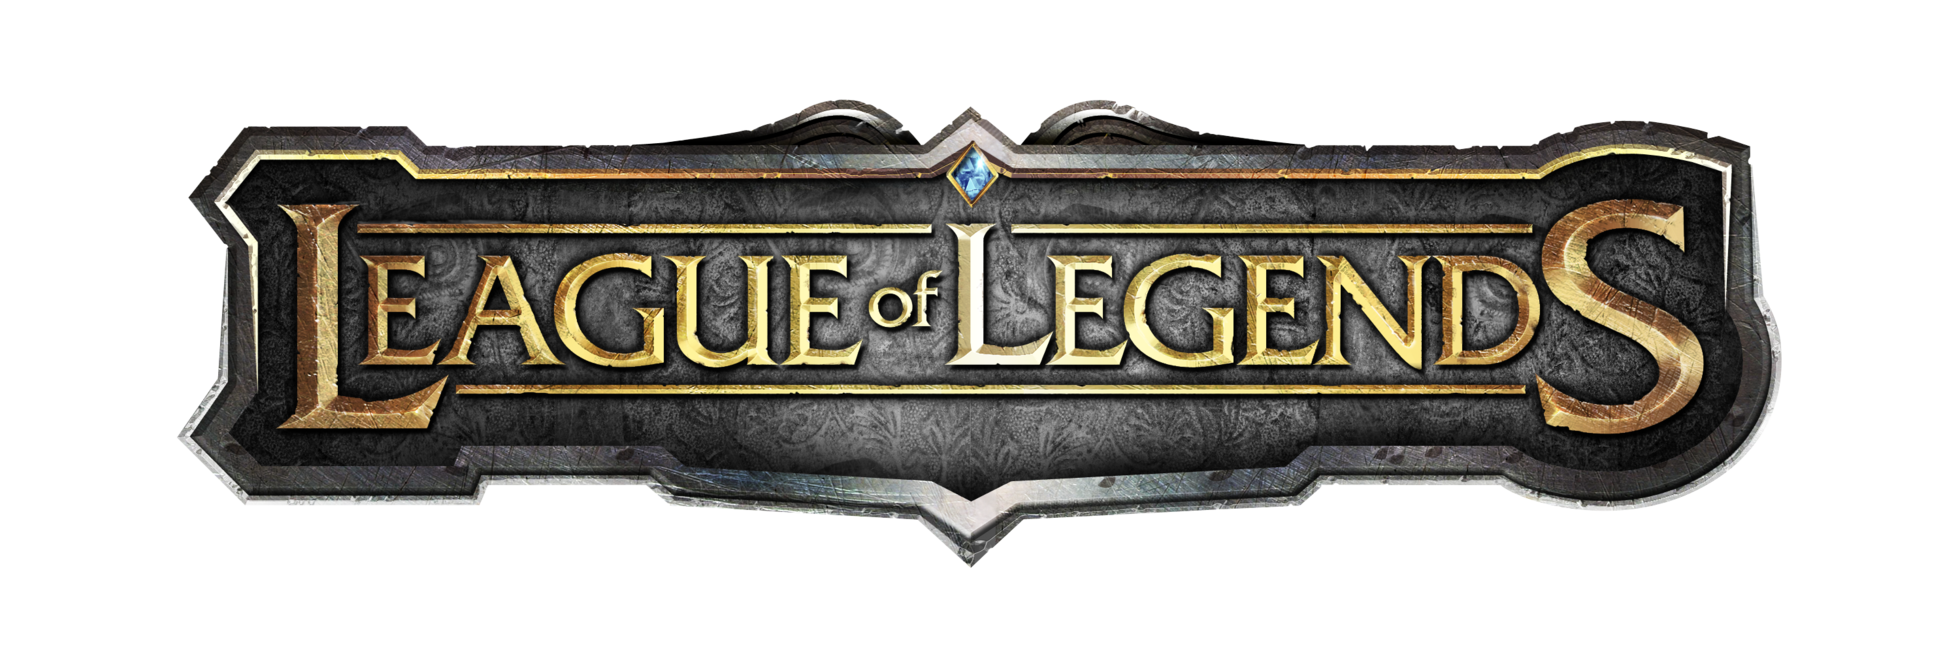 League of legends logo png. Old image purepng free